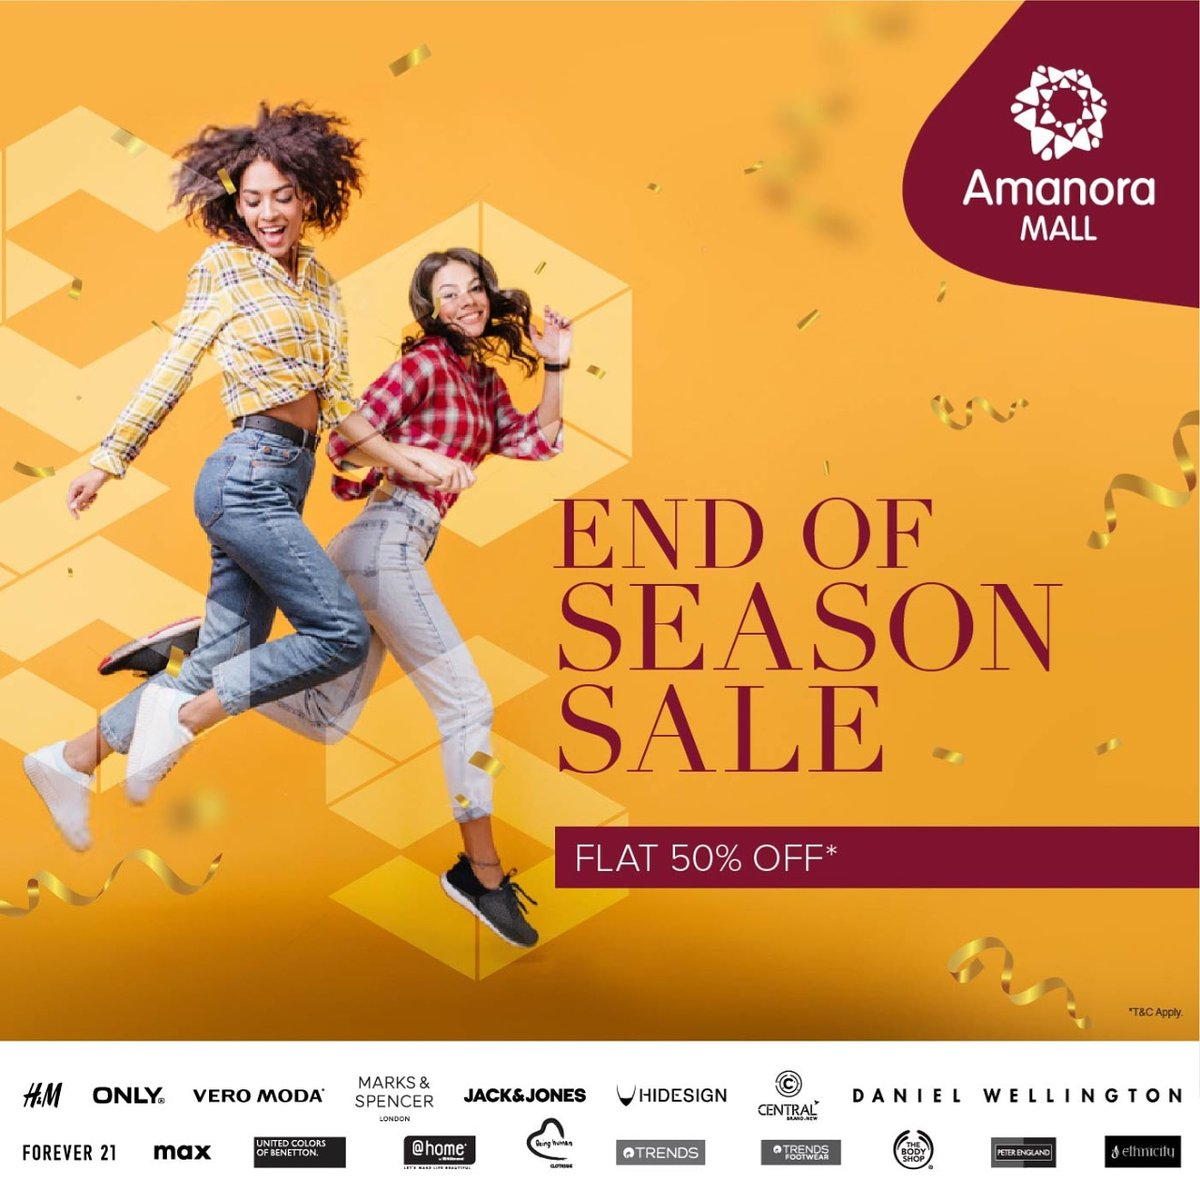 The biggest End of Season Sale is up and running at @AmanoraMallPune .So hurry now and stock up all your faves. #Amanoramall #Eoss #Sale #Discount #Offer